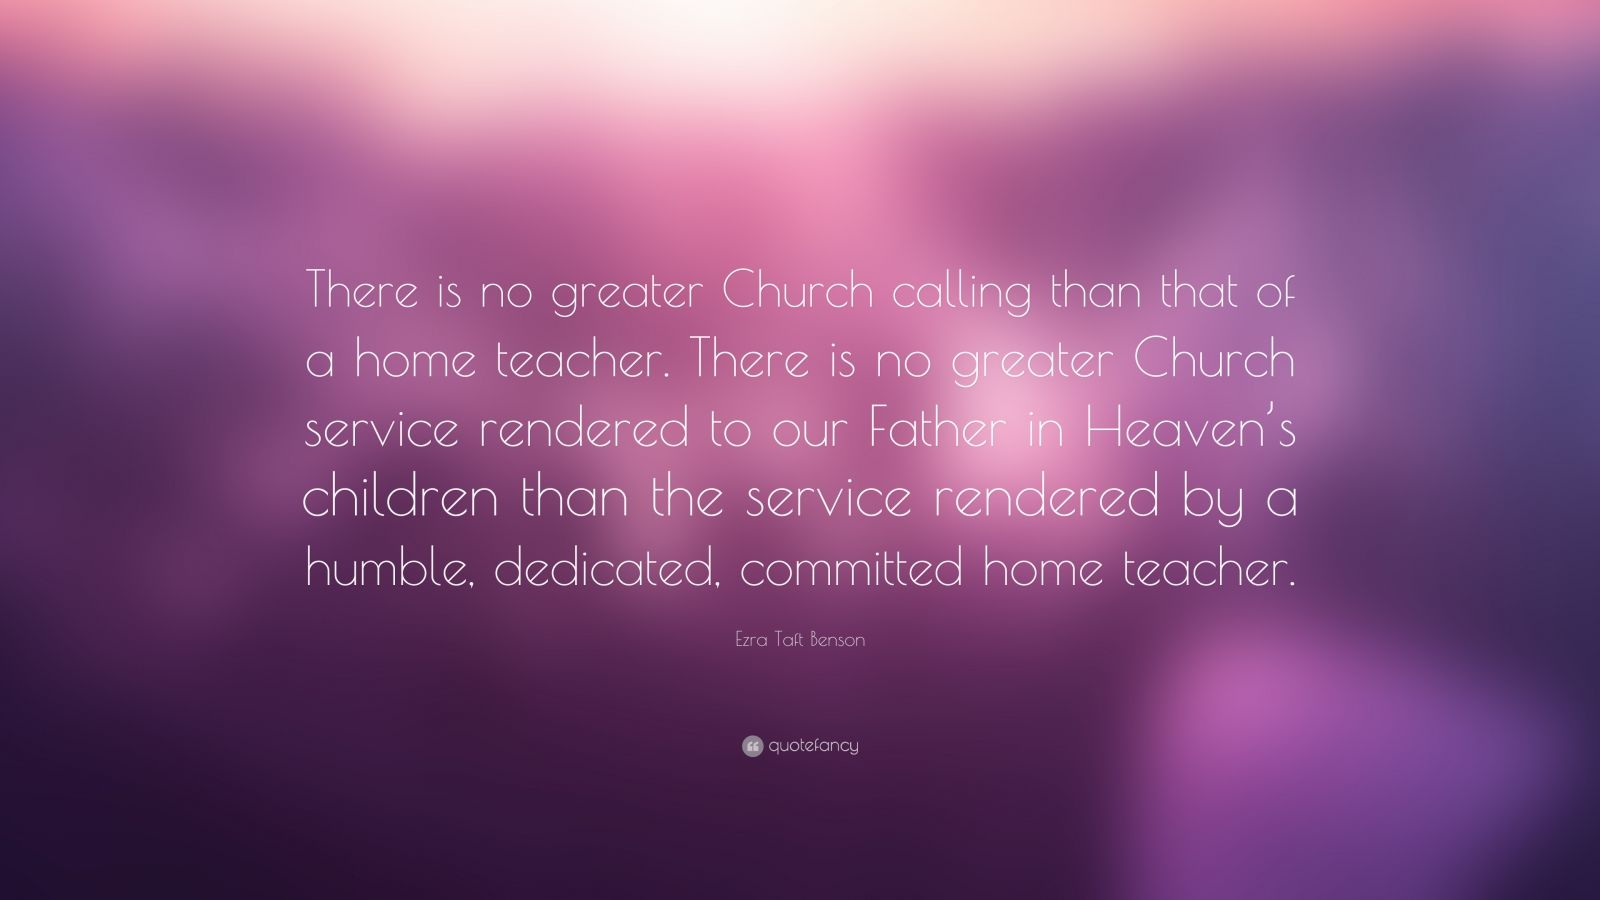 """Ezra Taft Benson Quote: """"There is no greater Church calling than that of a home teacher. There is no greater Church service rendered to our Father in Heaven's children than the service rendered by a humble, dedicated, committed home teacher."""""""